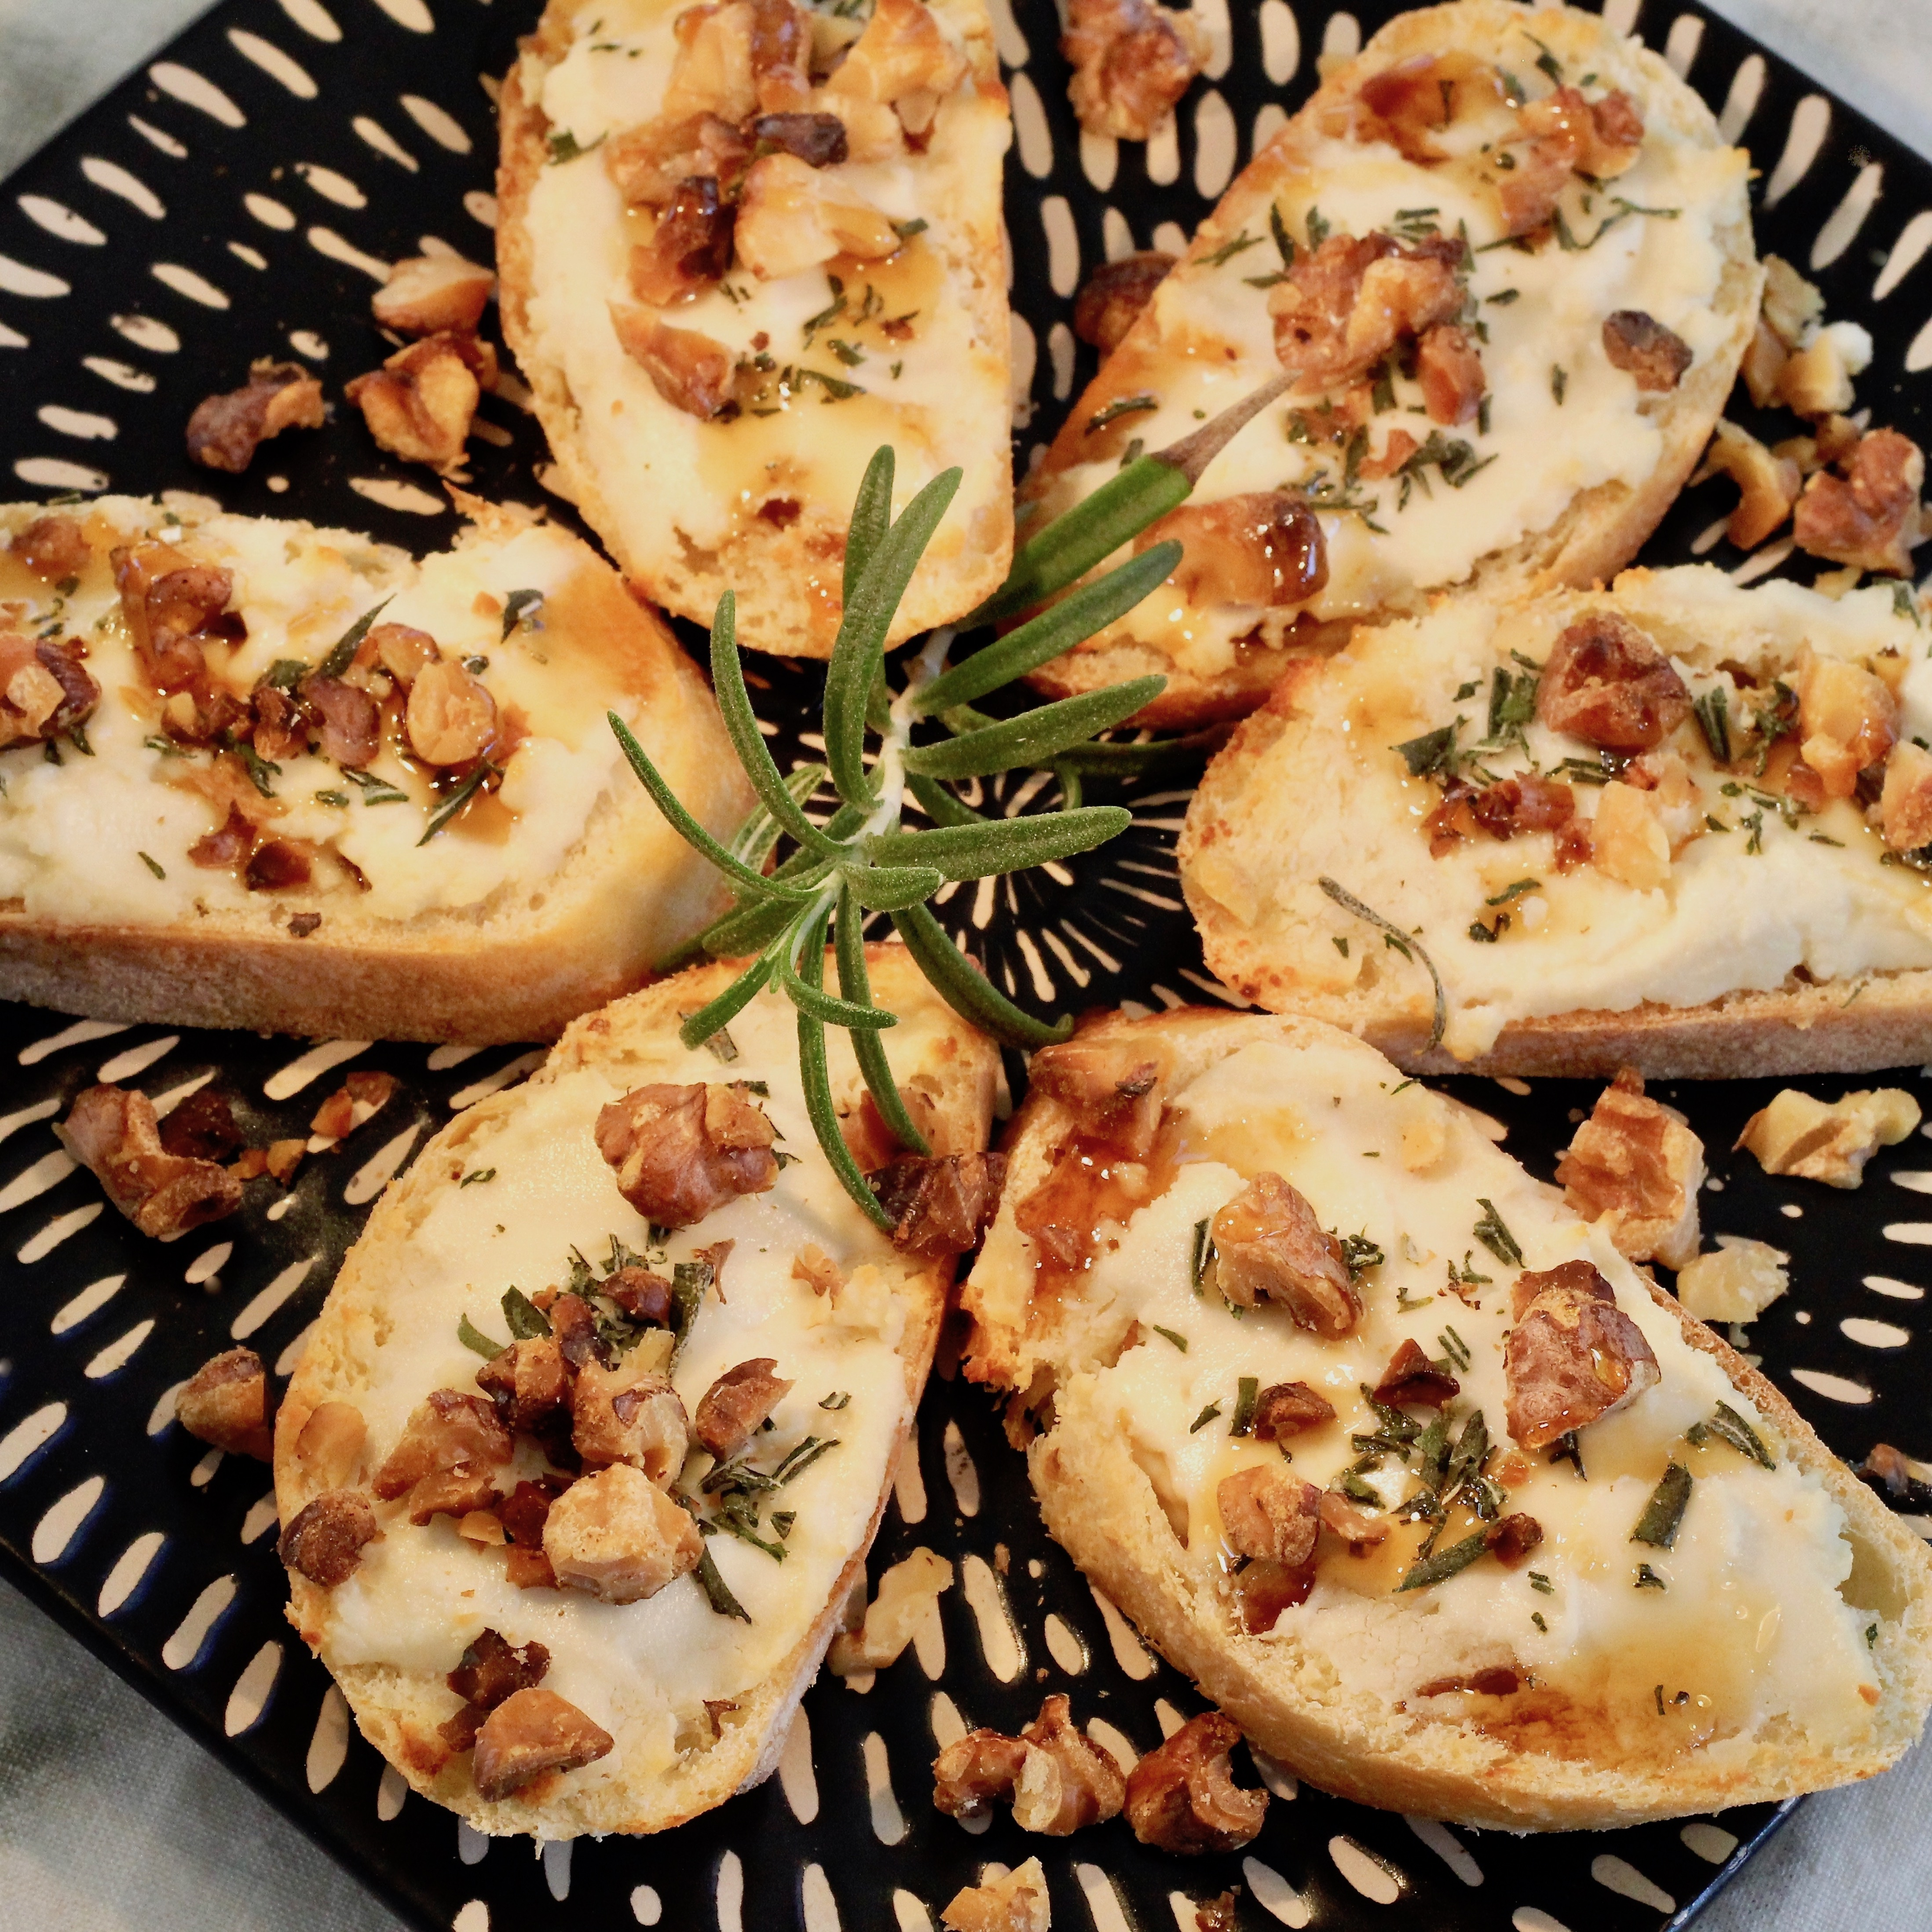 Rosemary and Goat Cheese Crostini with Walnuts and Honey